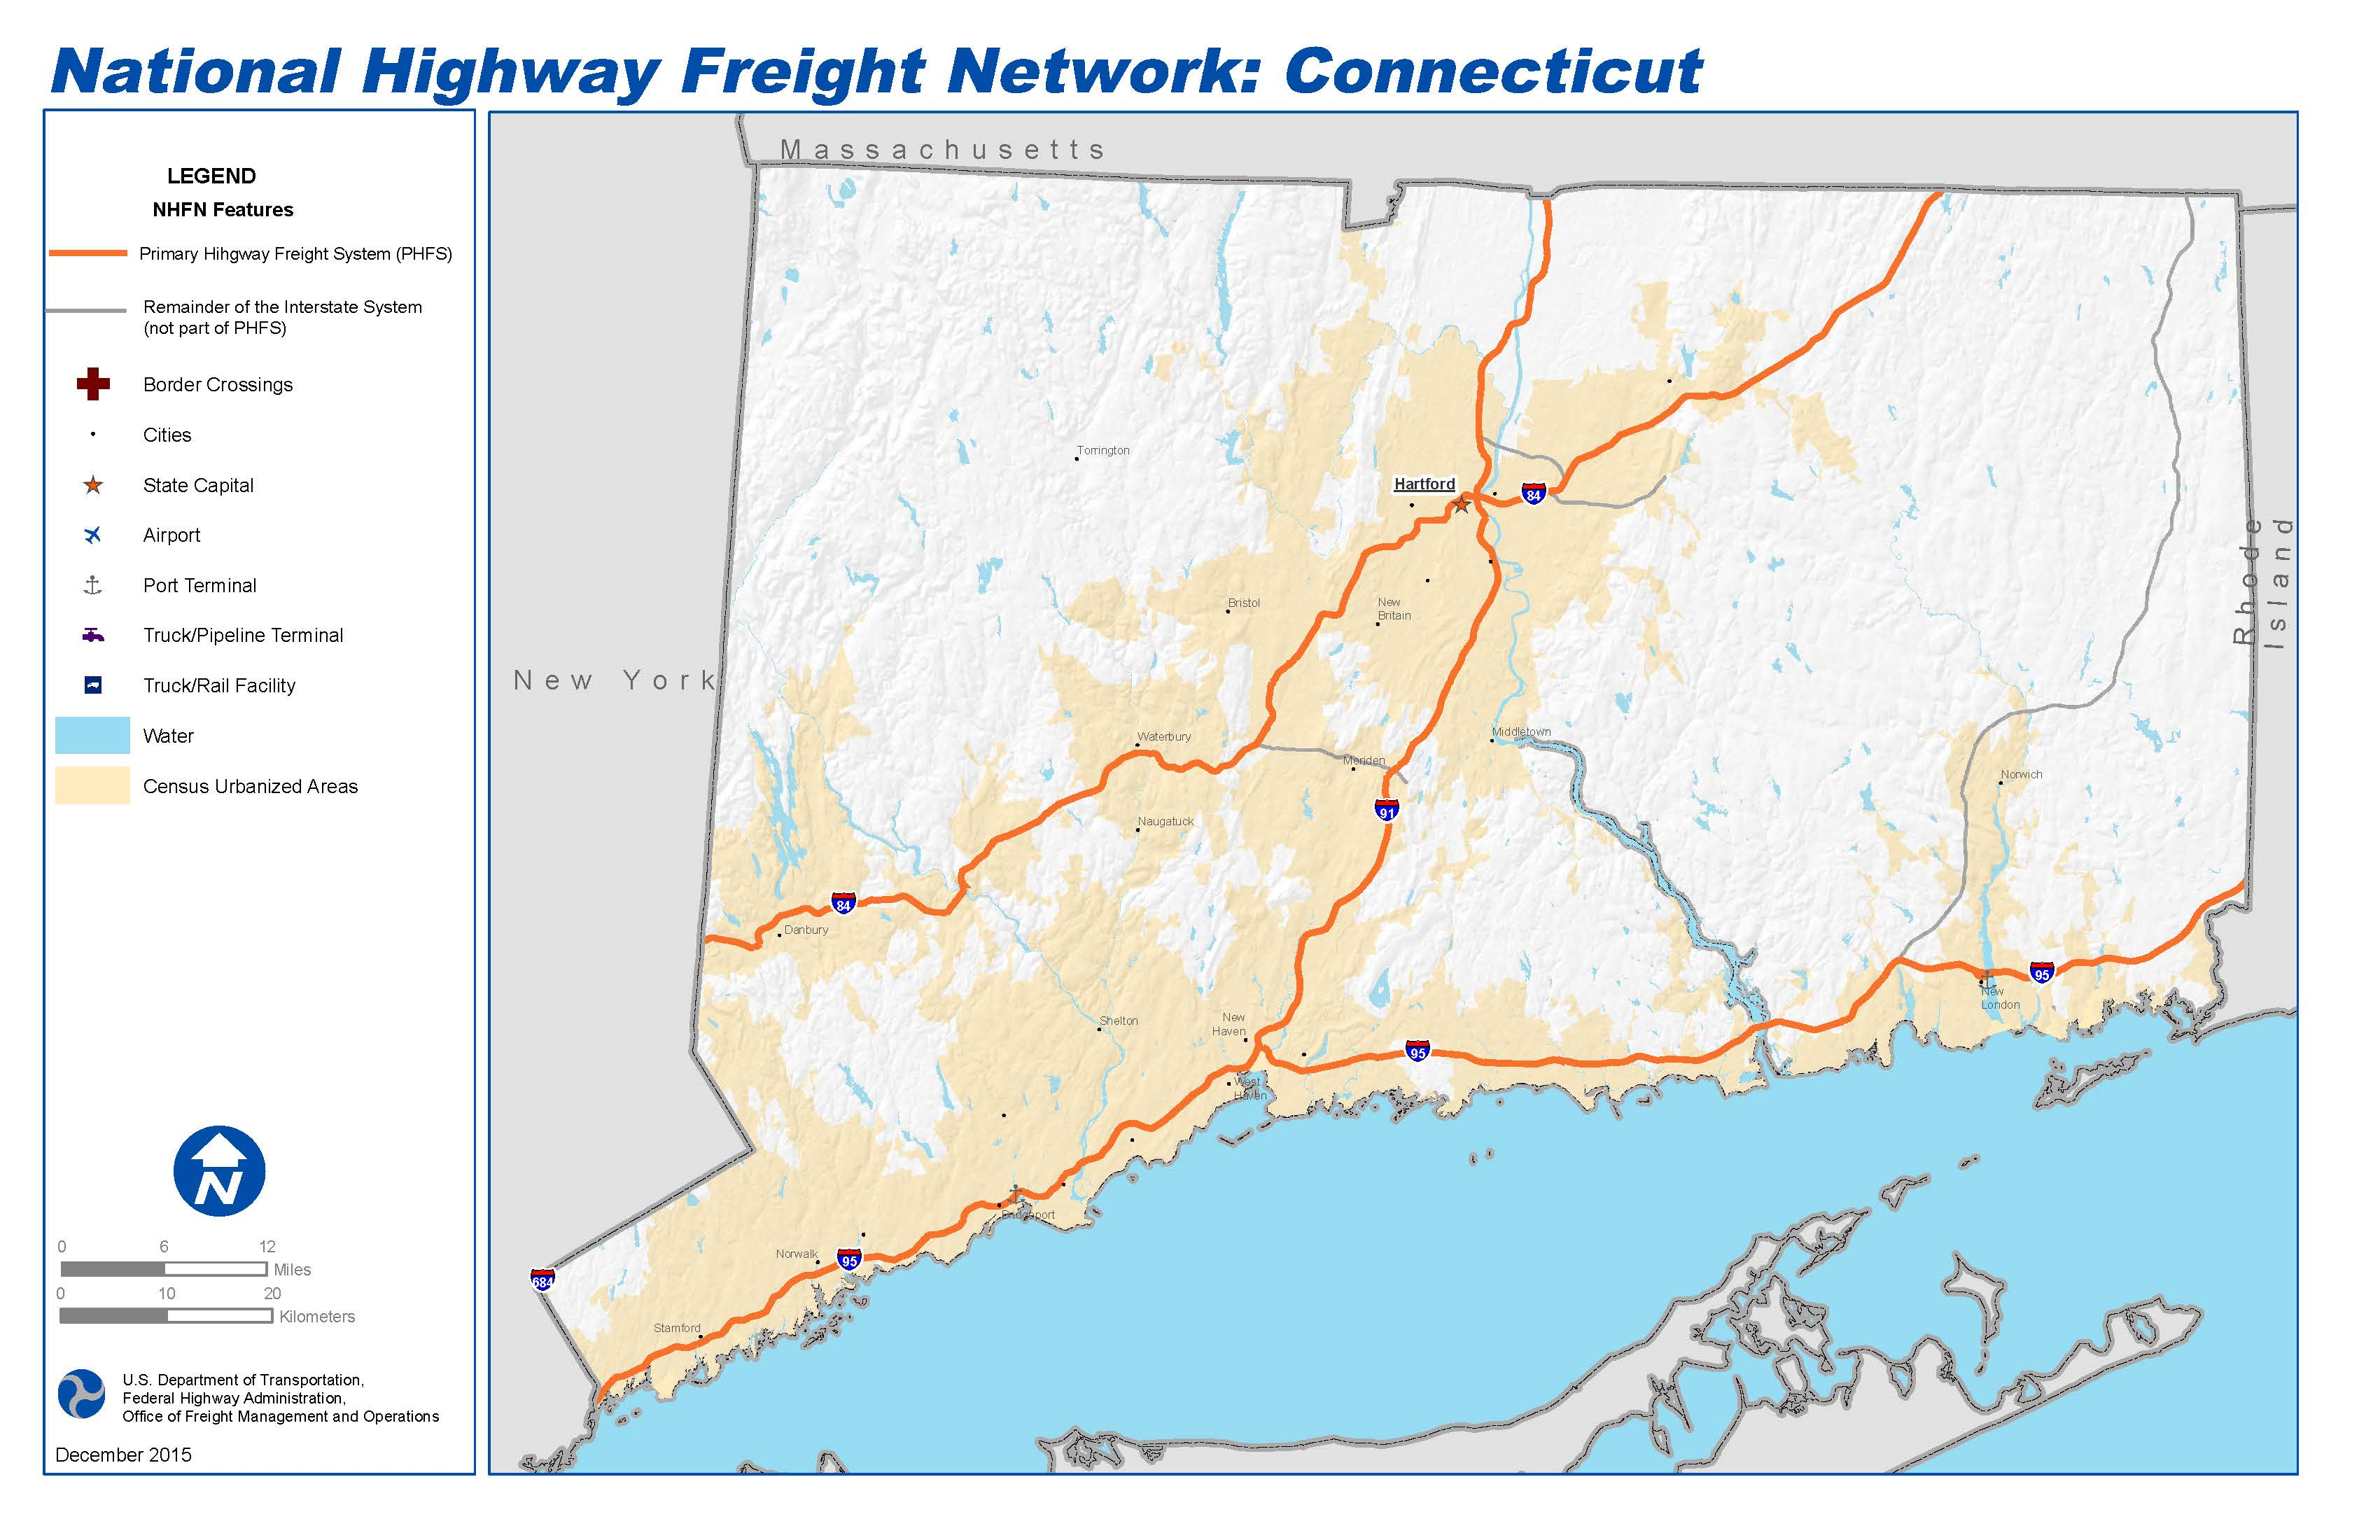 National Highway Freight Network Map And Tables For Connecticut - Map of connecticut cities